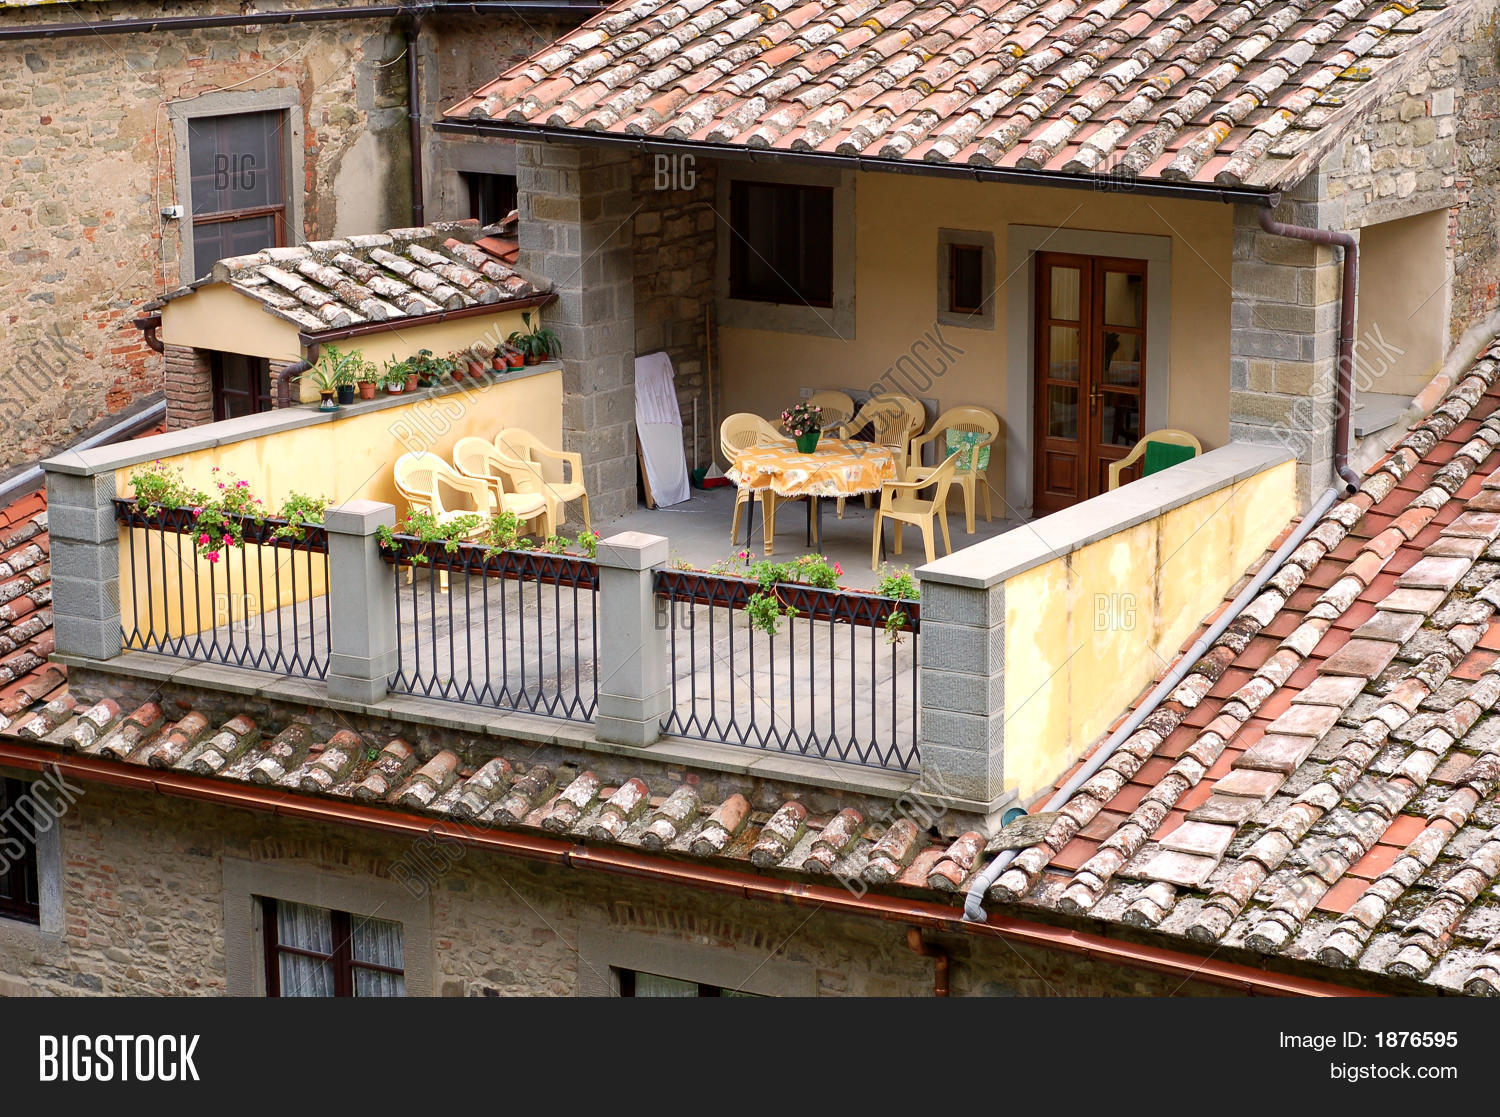 Sunny tuscan patio image photo bigstock for Tuscan roof design